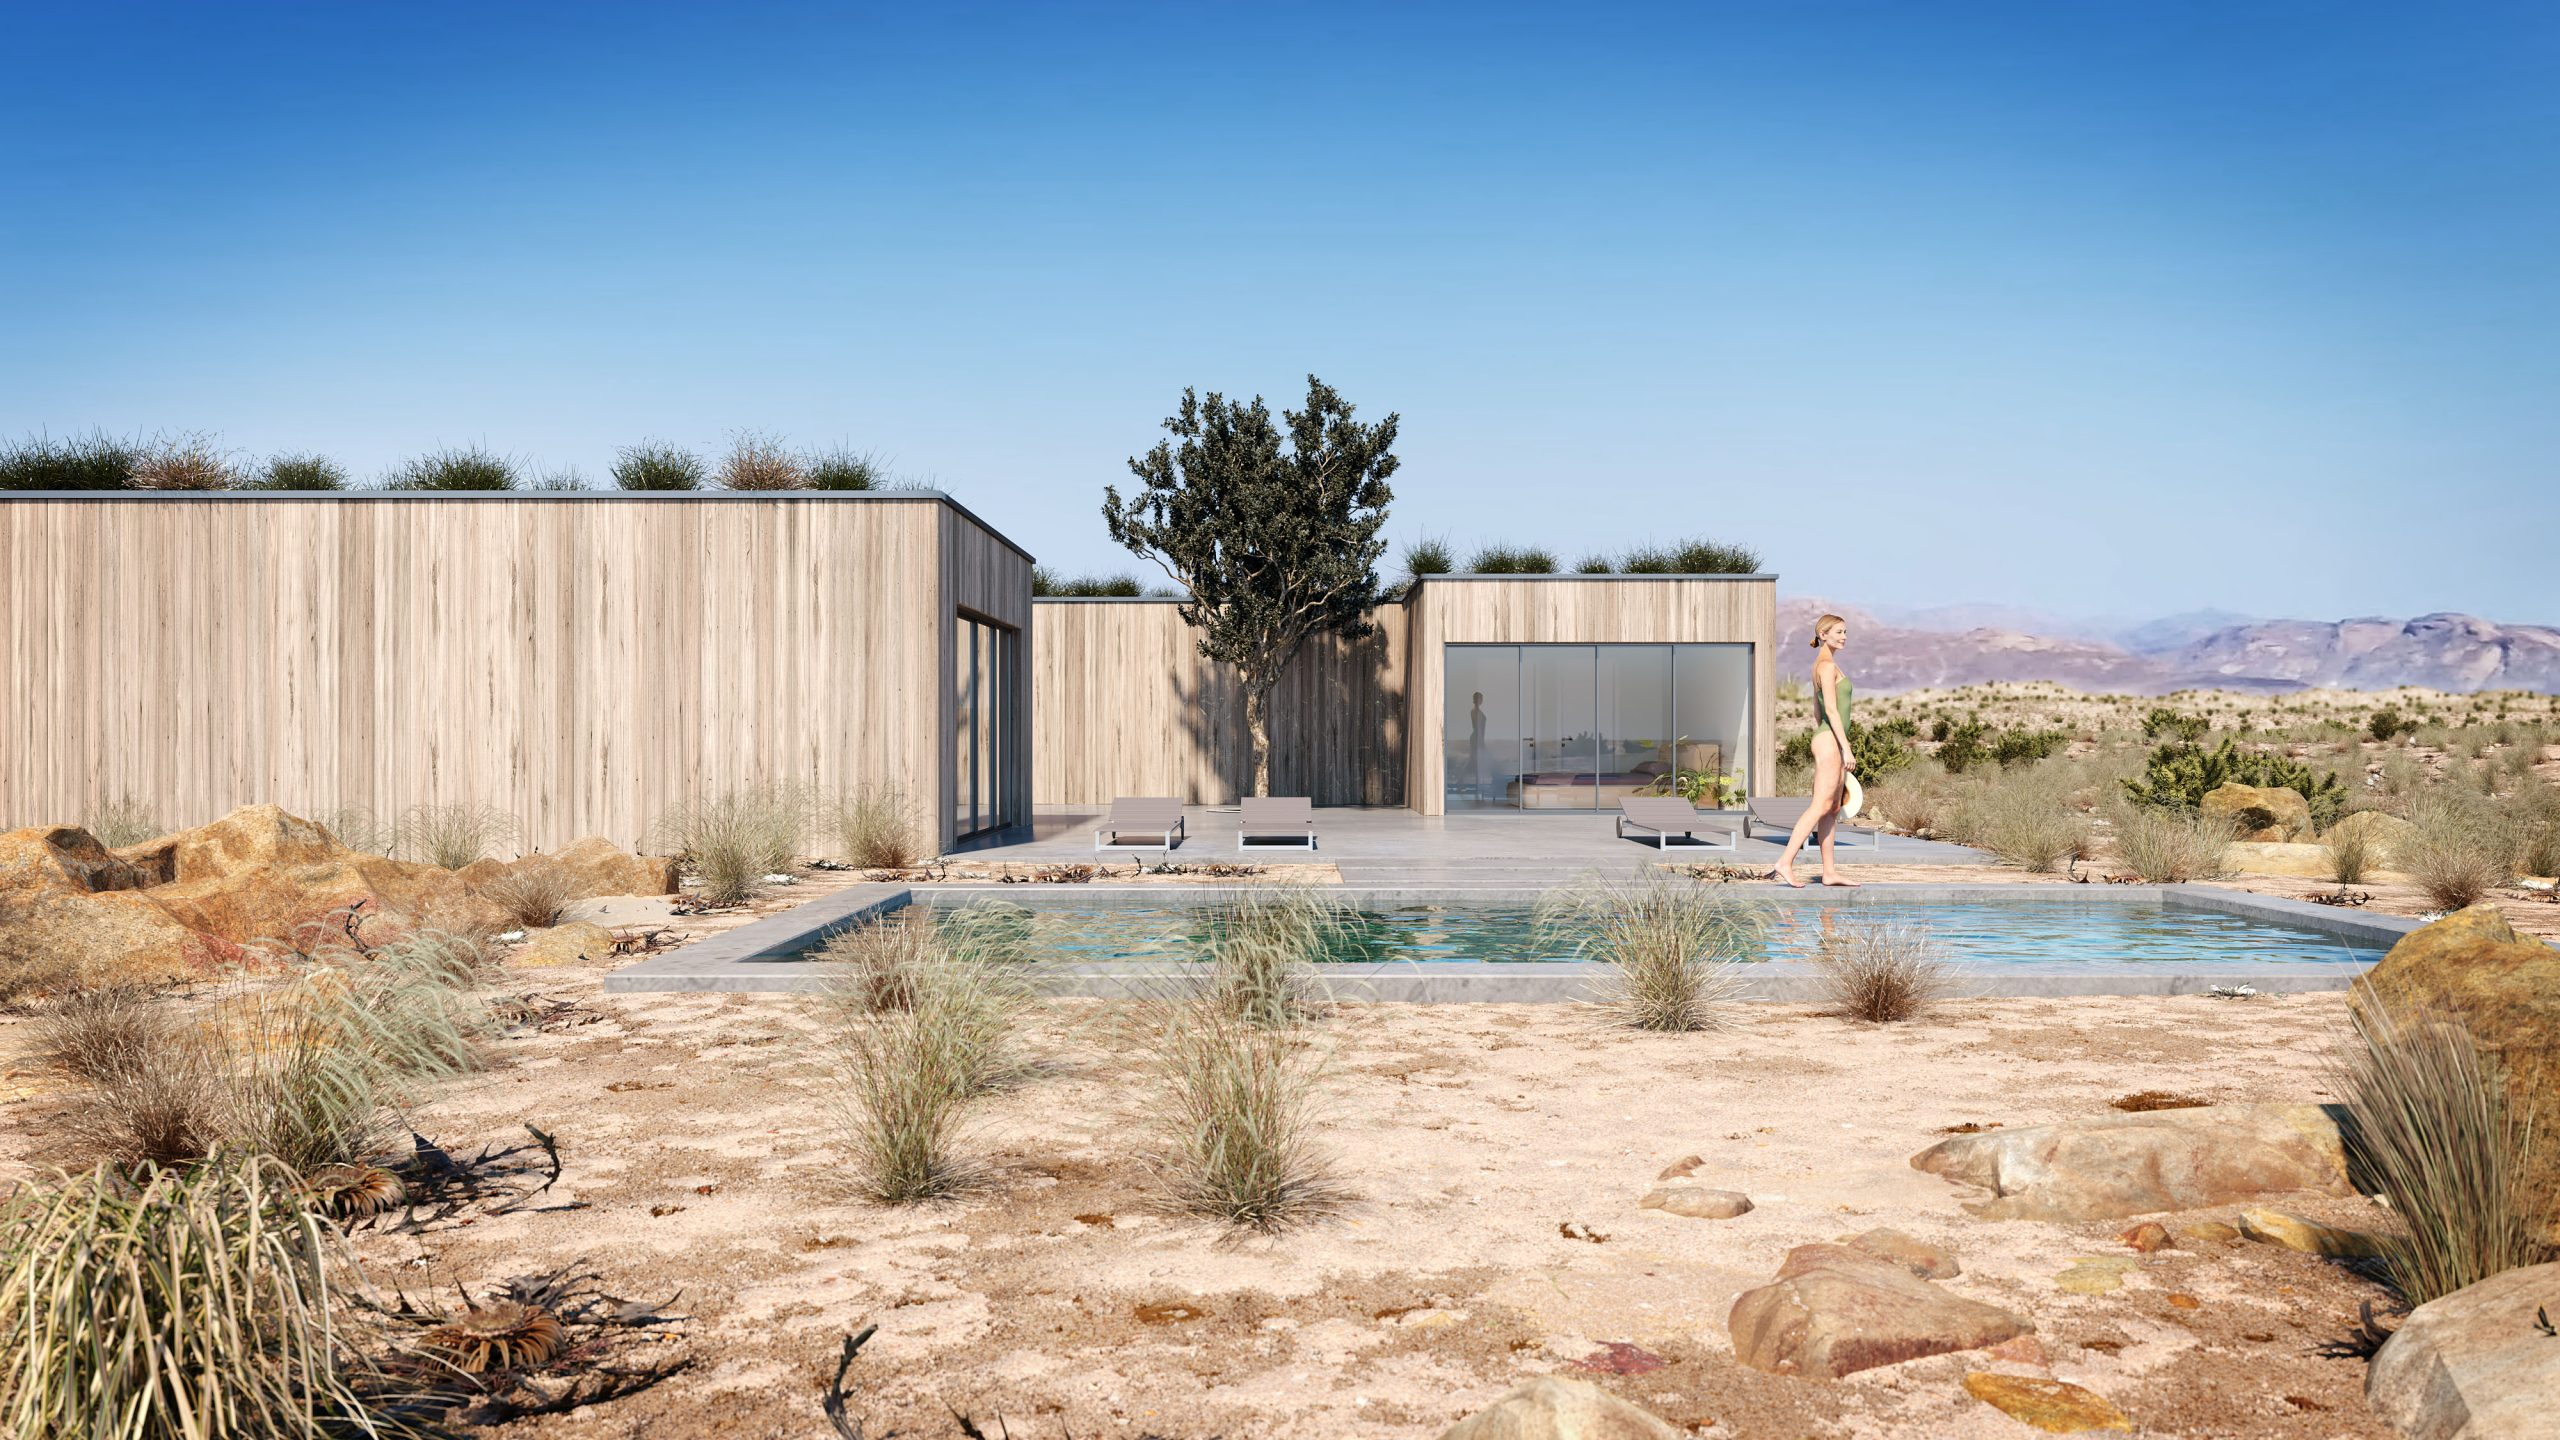 desert house, exterior architecture, desert retreat